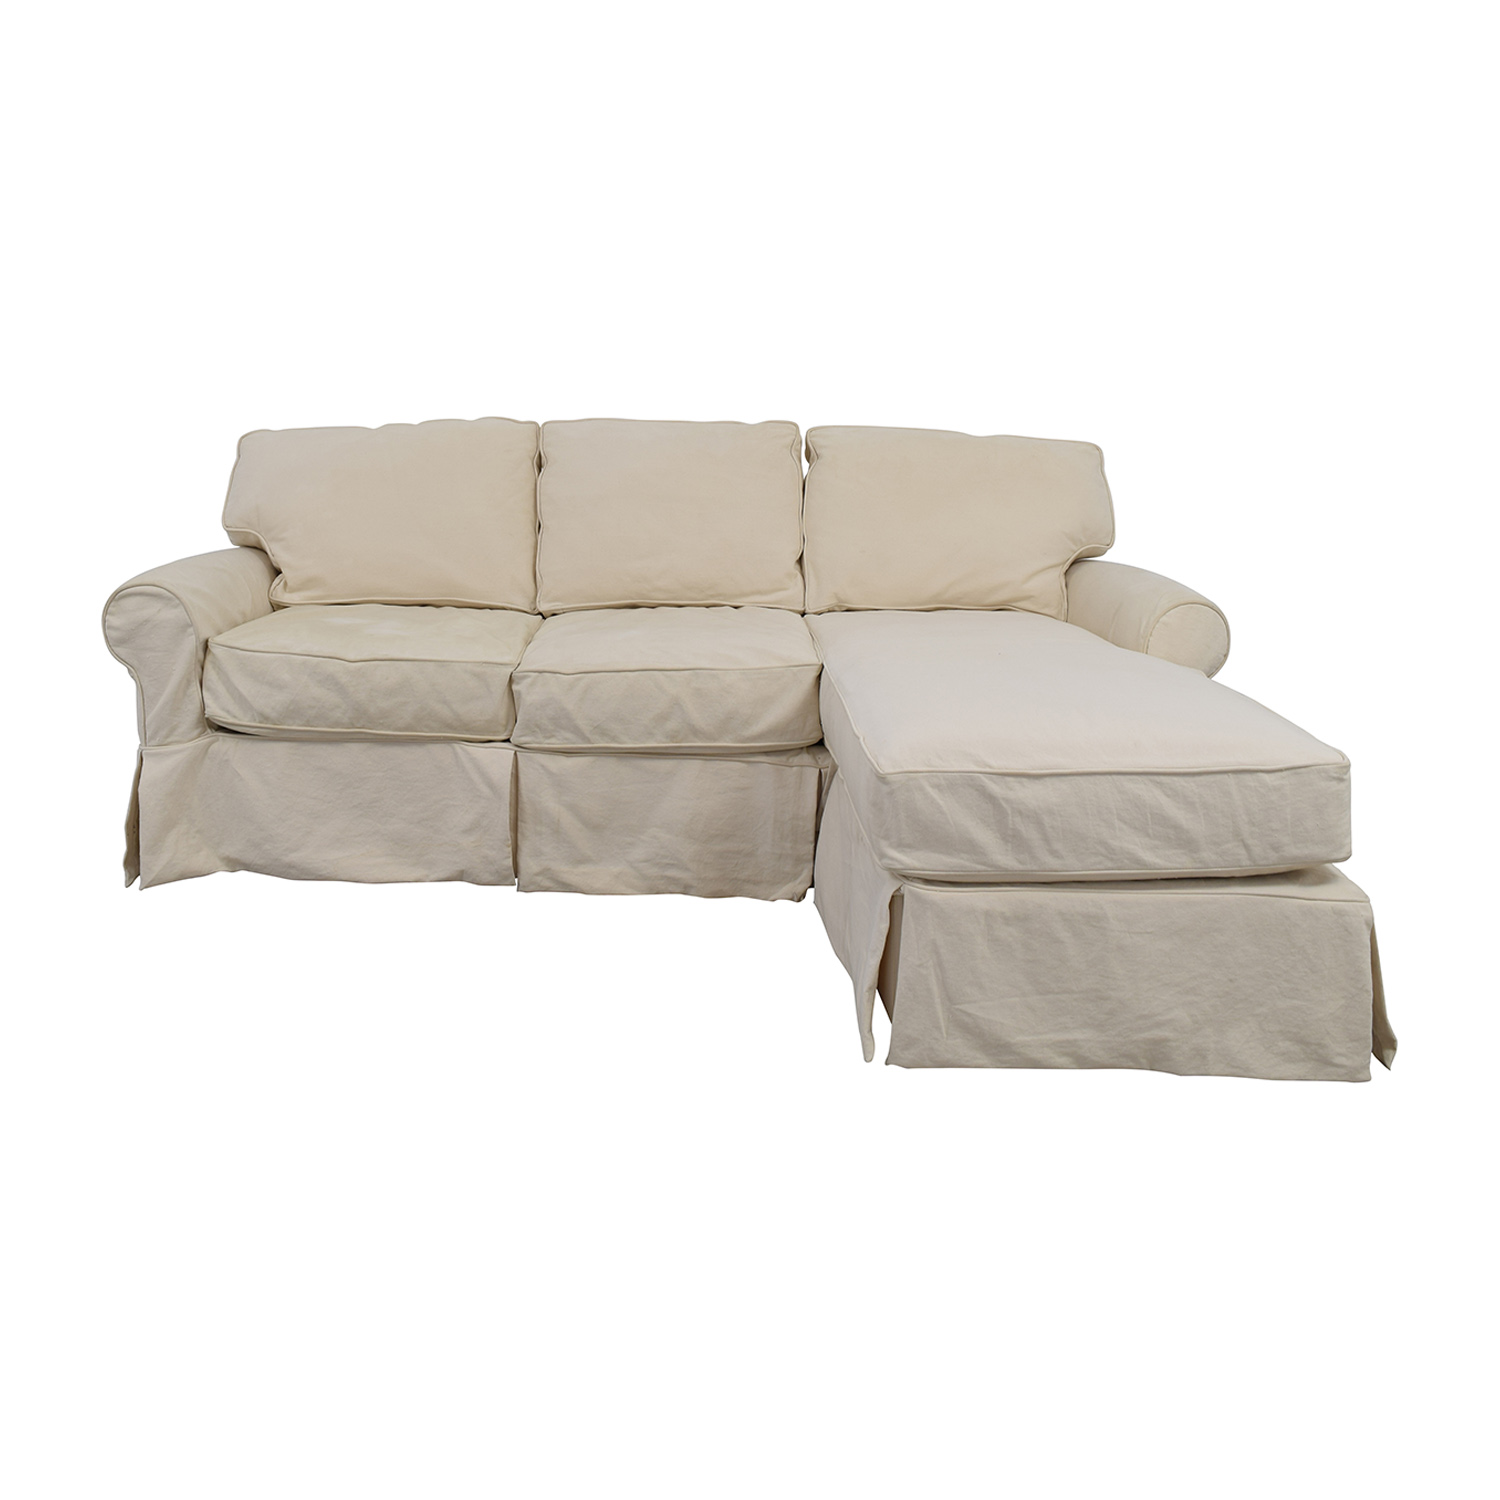 sofa kitchen leather sectional dp com jl piece dining white amazon in modern